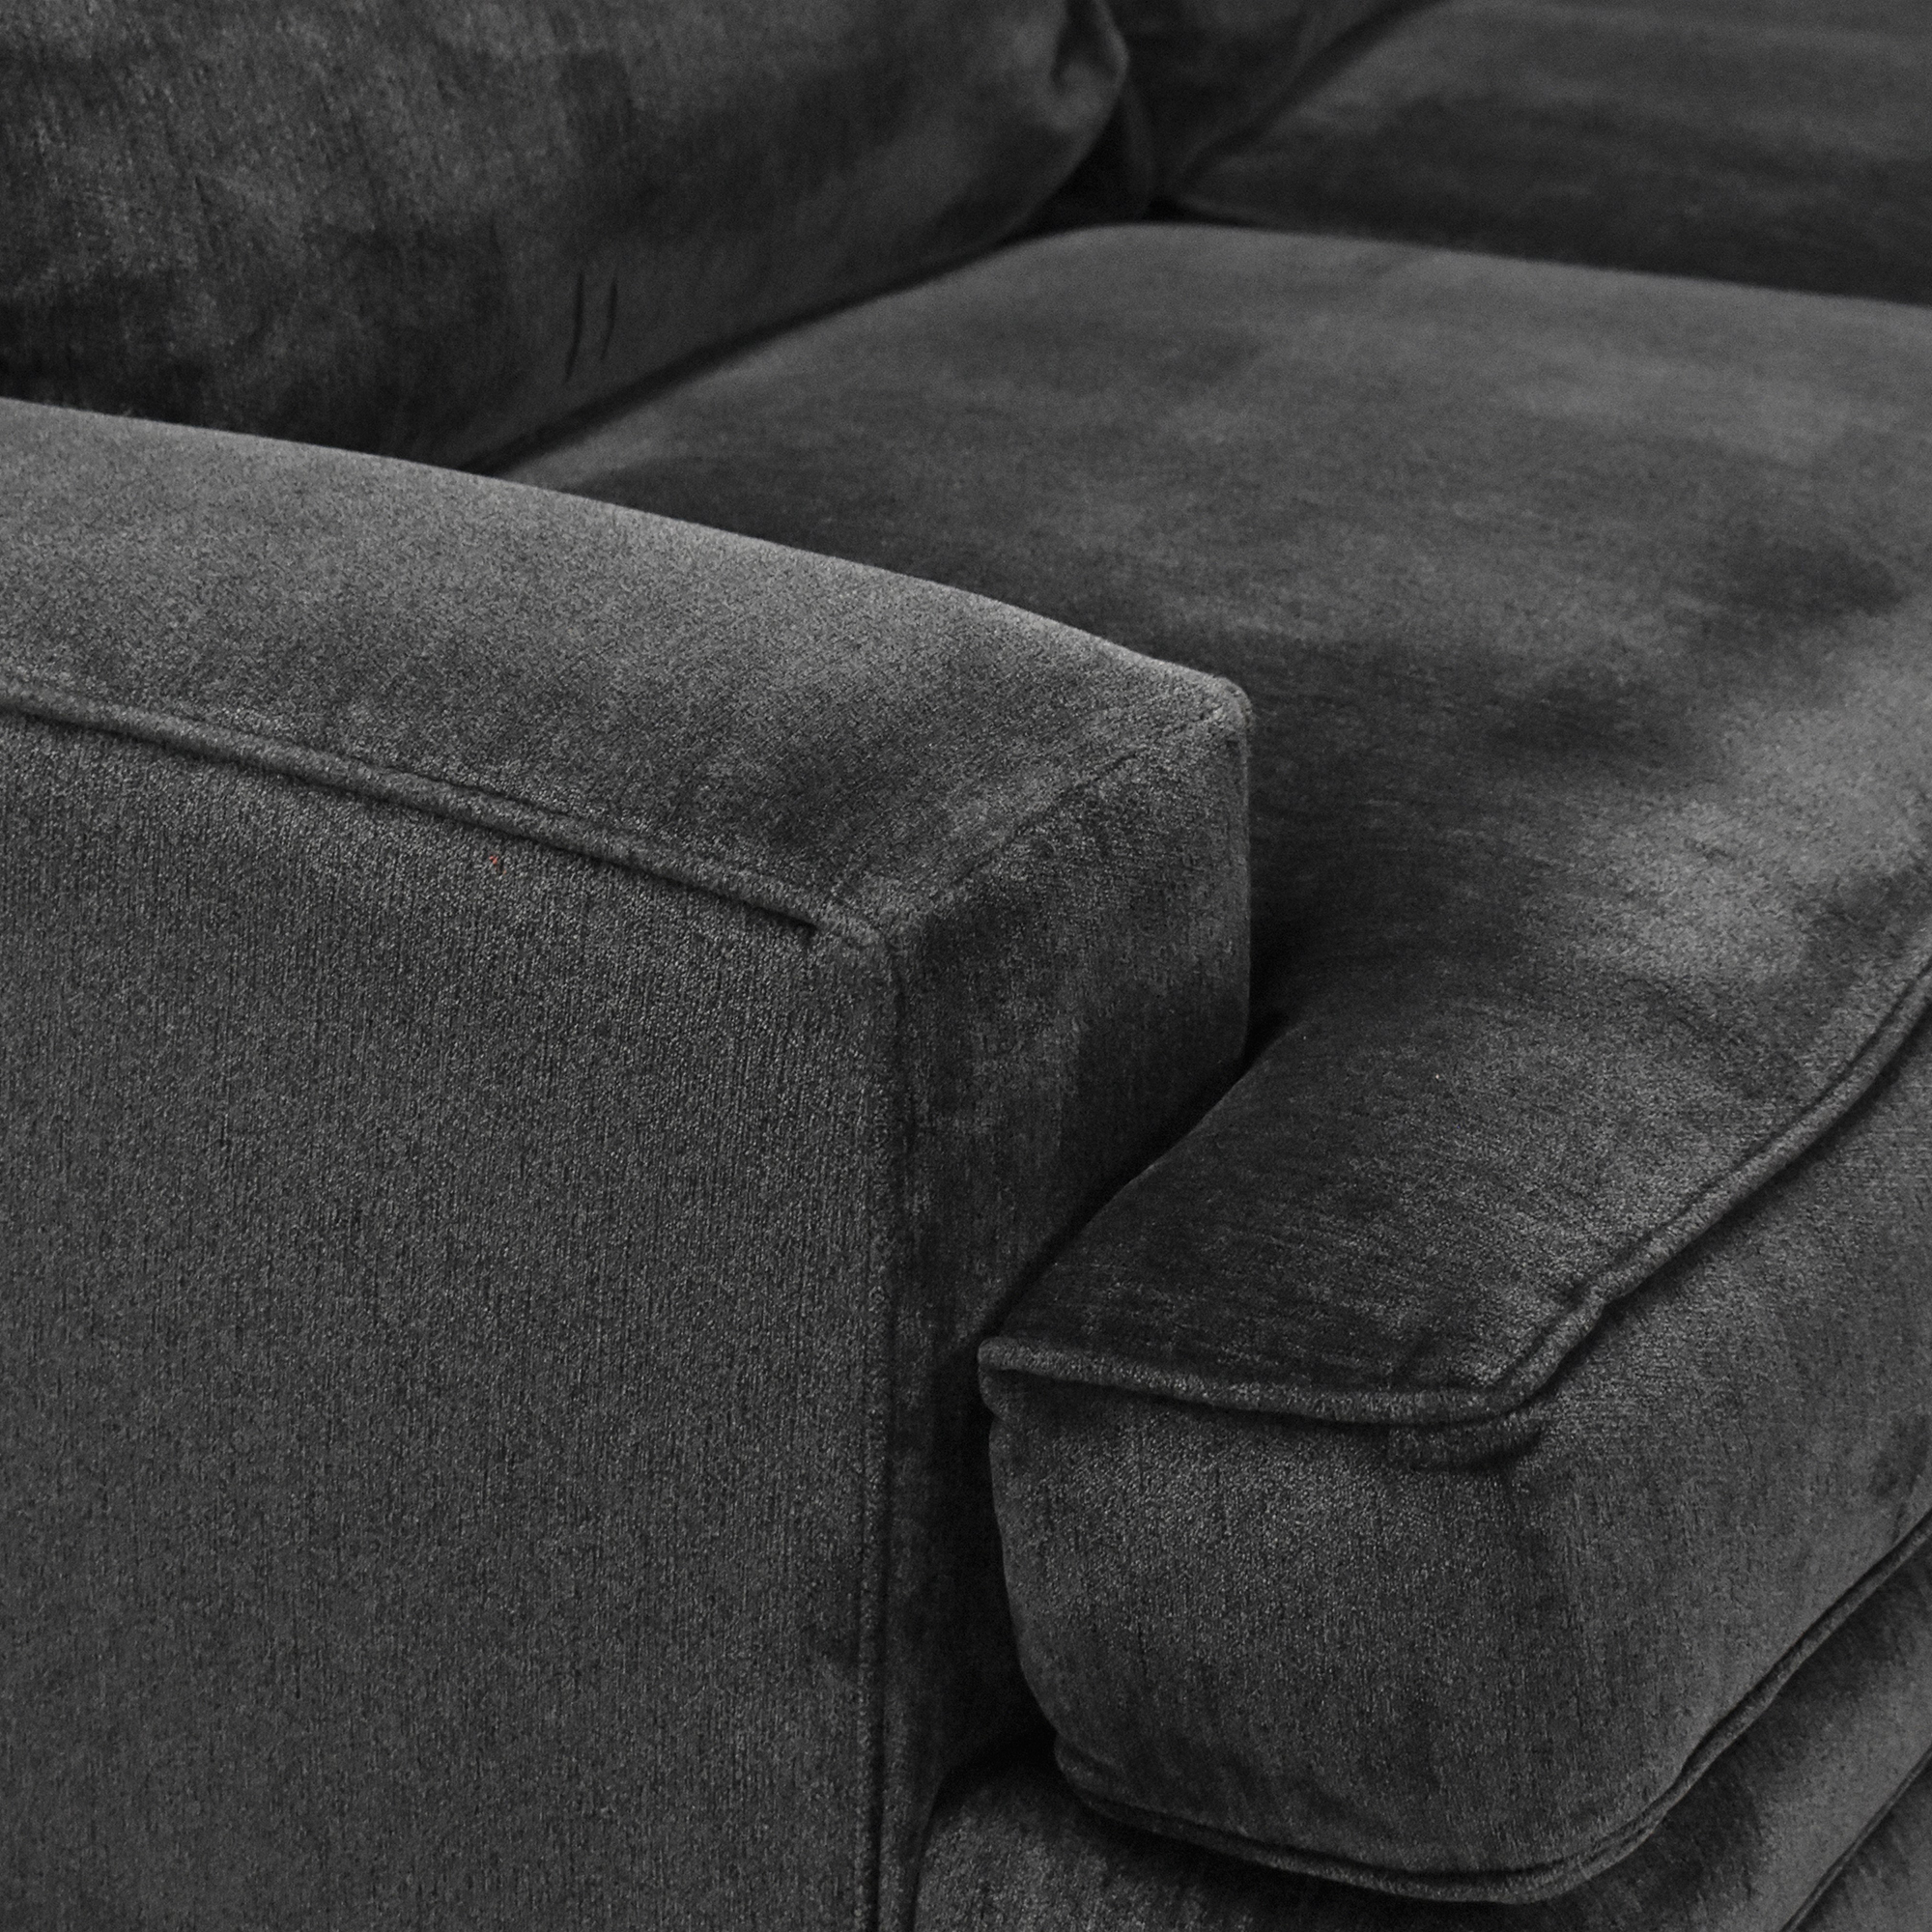 Macy's Macy's Teddy Four Piece Chaise Sectional Sofa dimensions